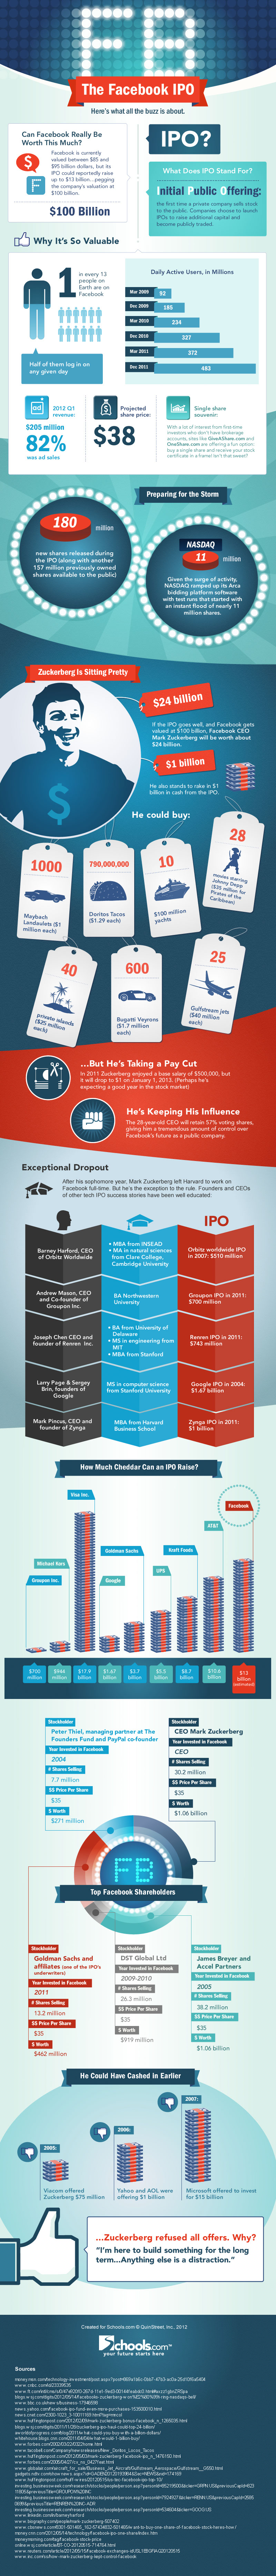 The-Facebook-Ipo-infographic